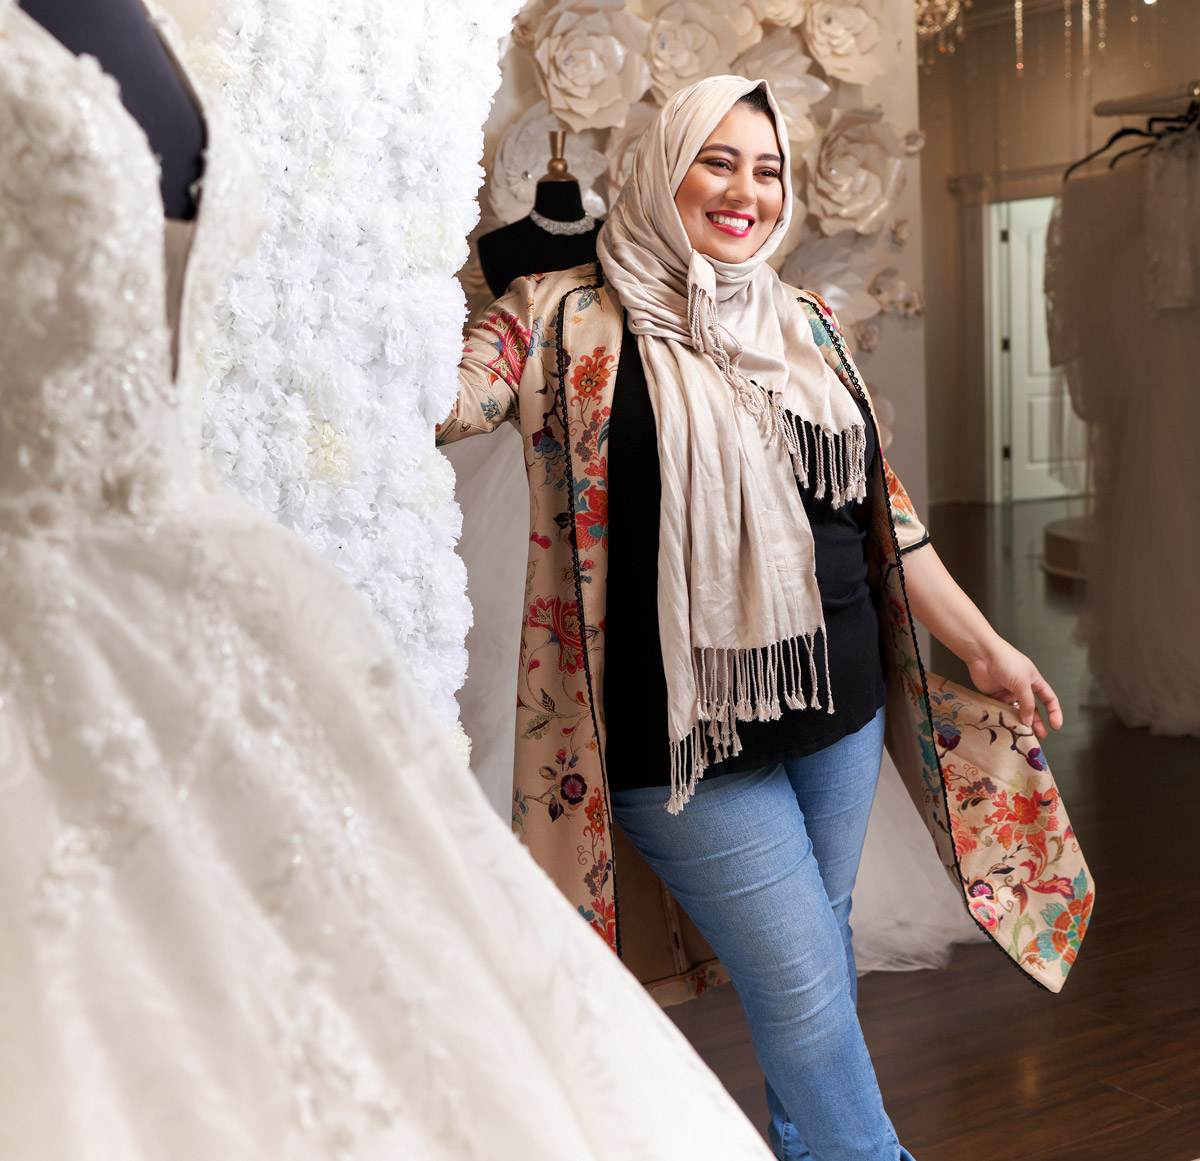 Rawan Asad standing next to a wedding gown